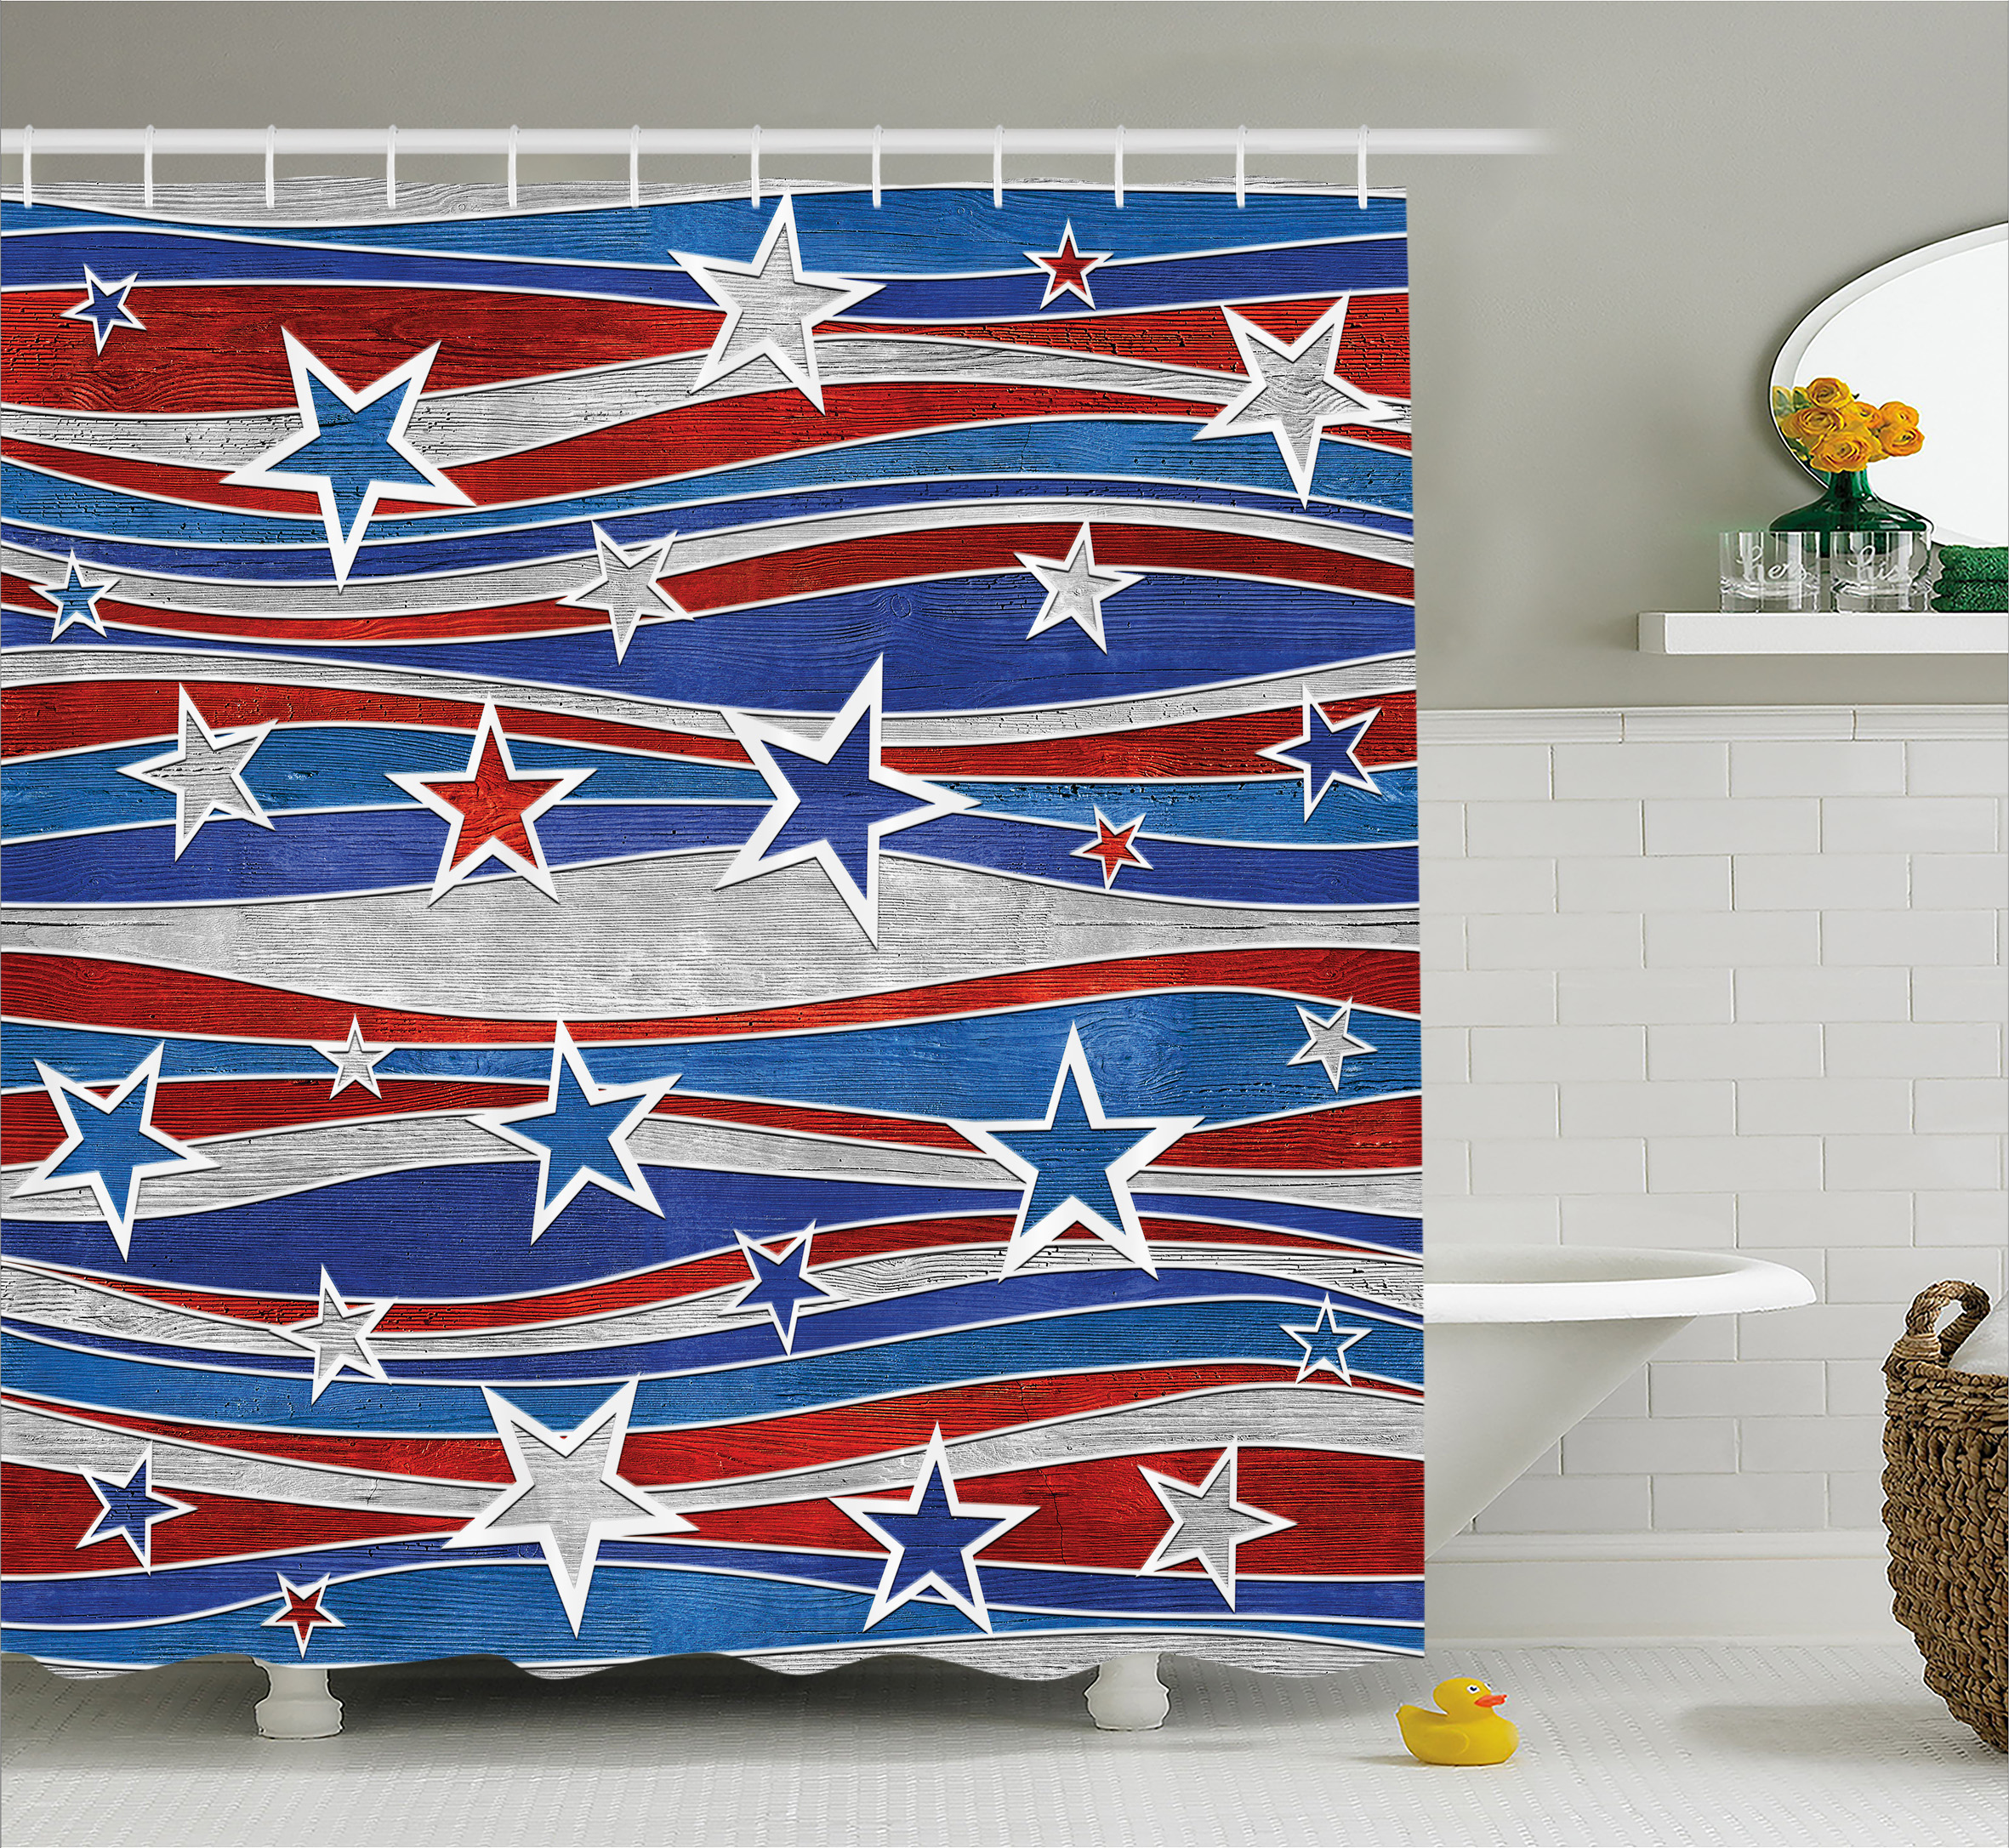 Rustic Home Decor Shower Curtain, Abstract Decor Pattern of Patriotic American Flag Figure Image, Fabric Bathroom Set with Hooks, 69W X 70L Inches, Red Blue and White, by Ambesonne